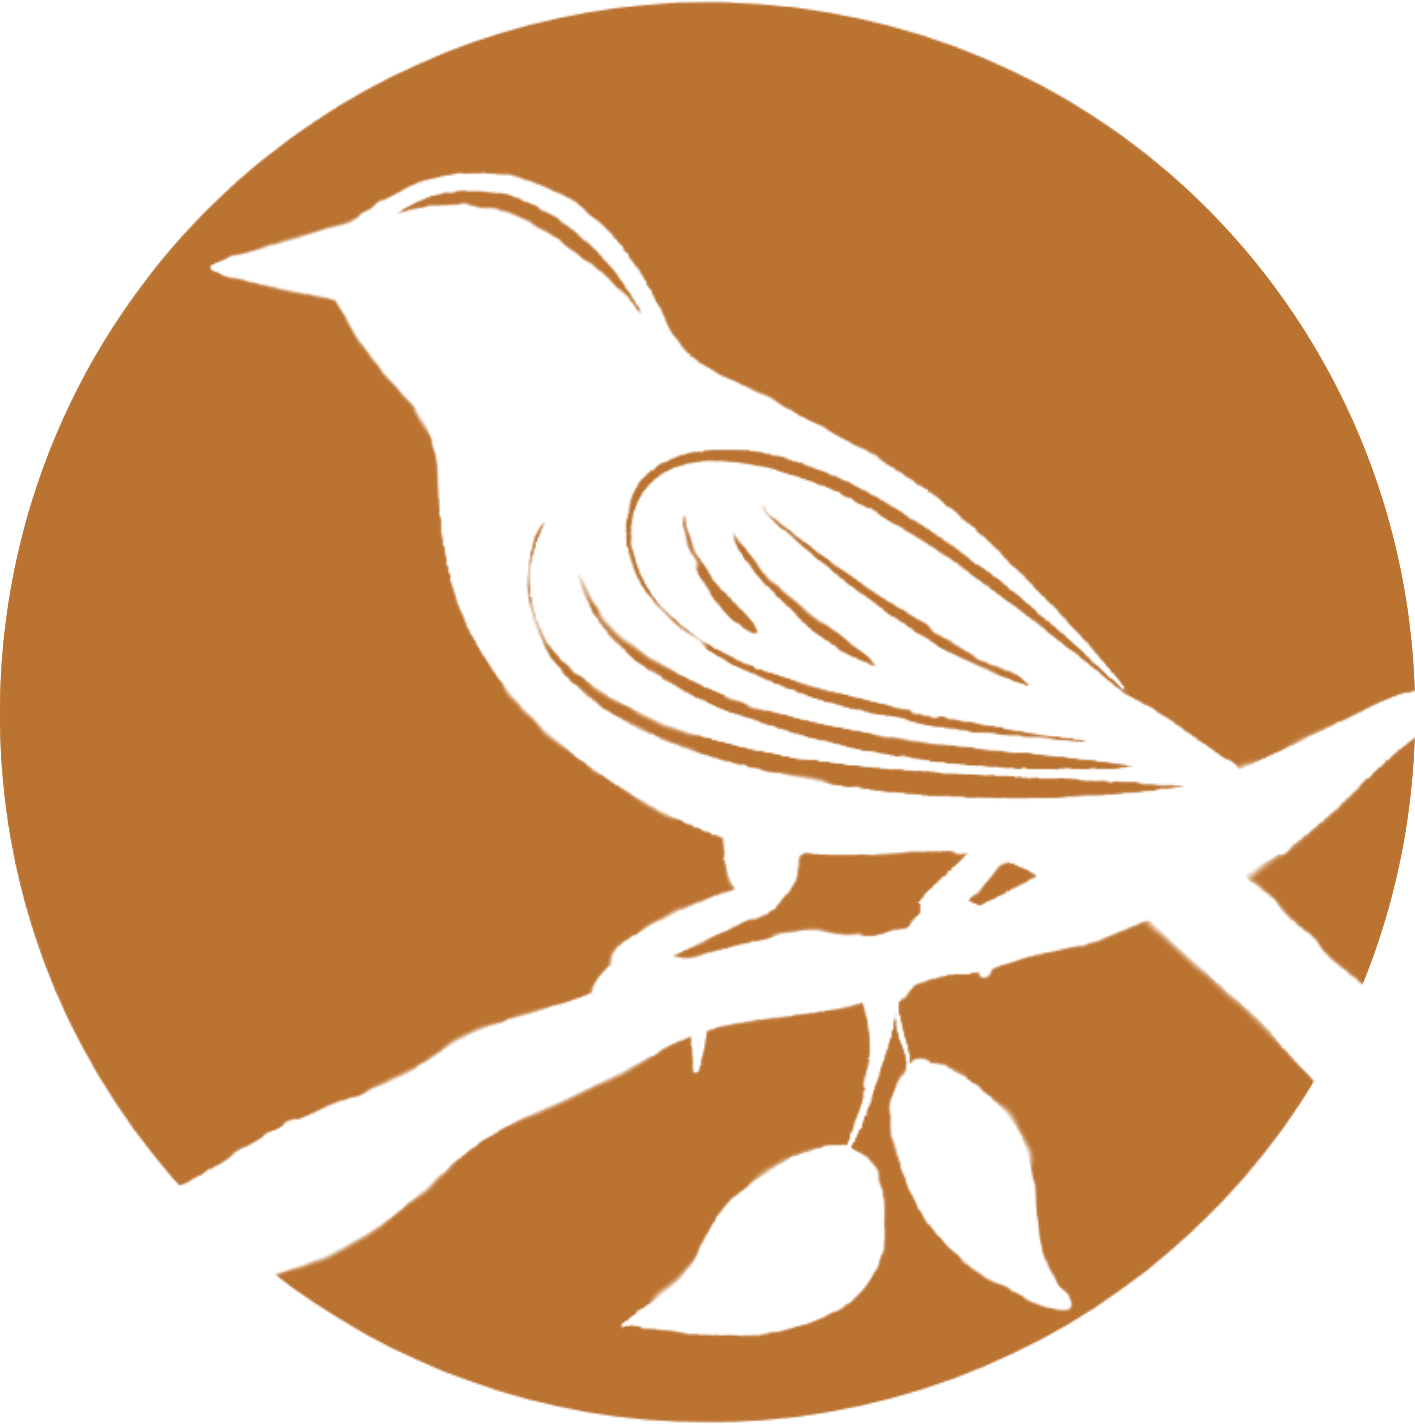 Pennies and Sparrows